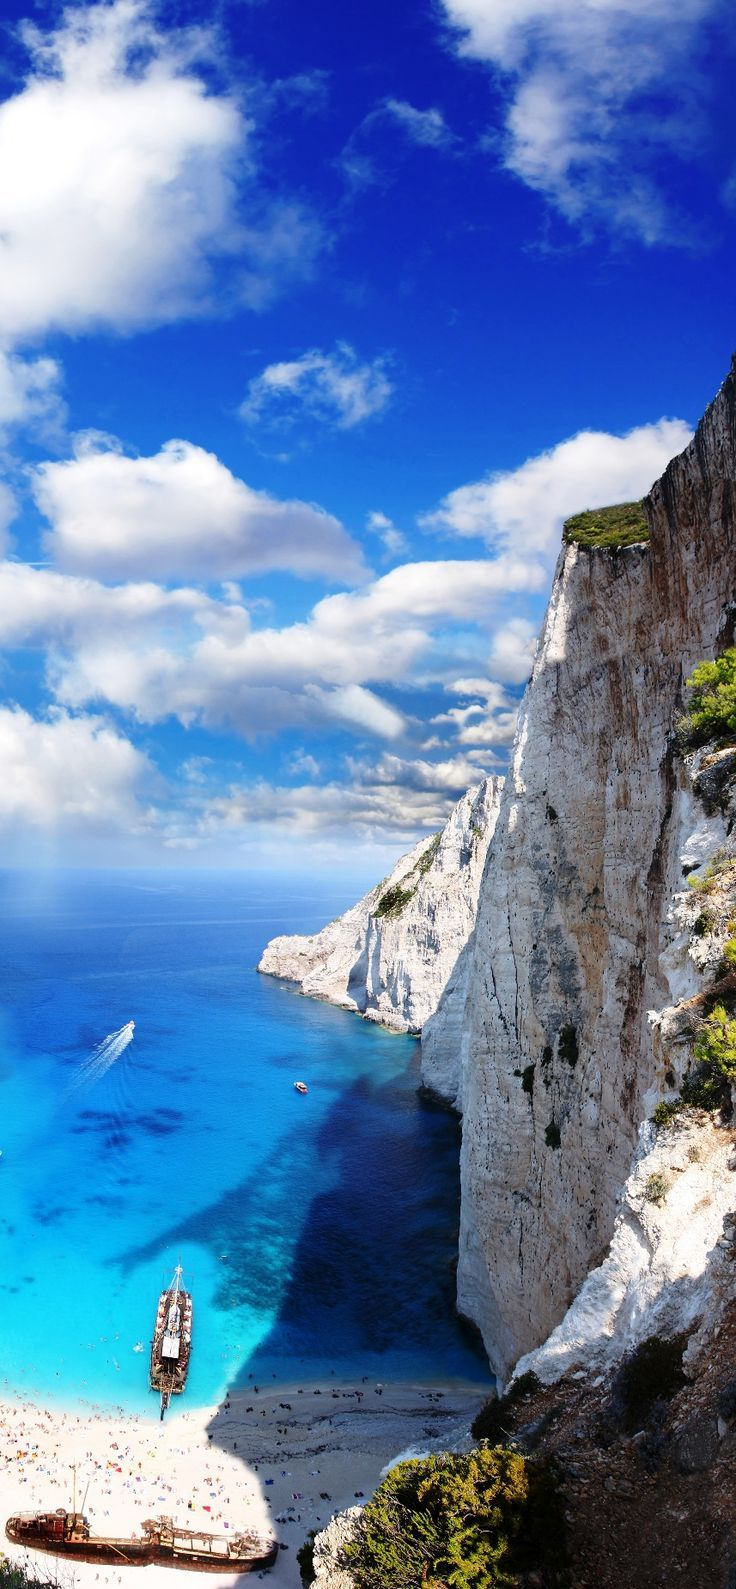 Navagio Beach, Greece. We have some amazing free travel guides to Greece on the website http://www.cntraveller.com/guides/europe/greece